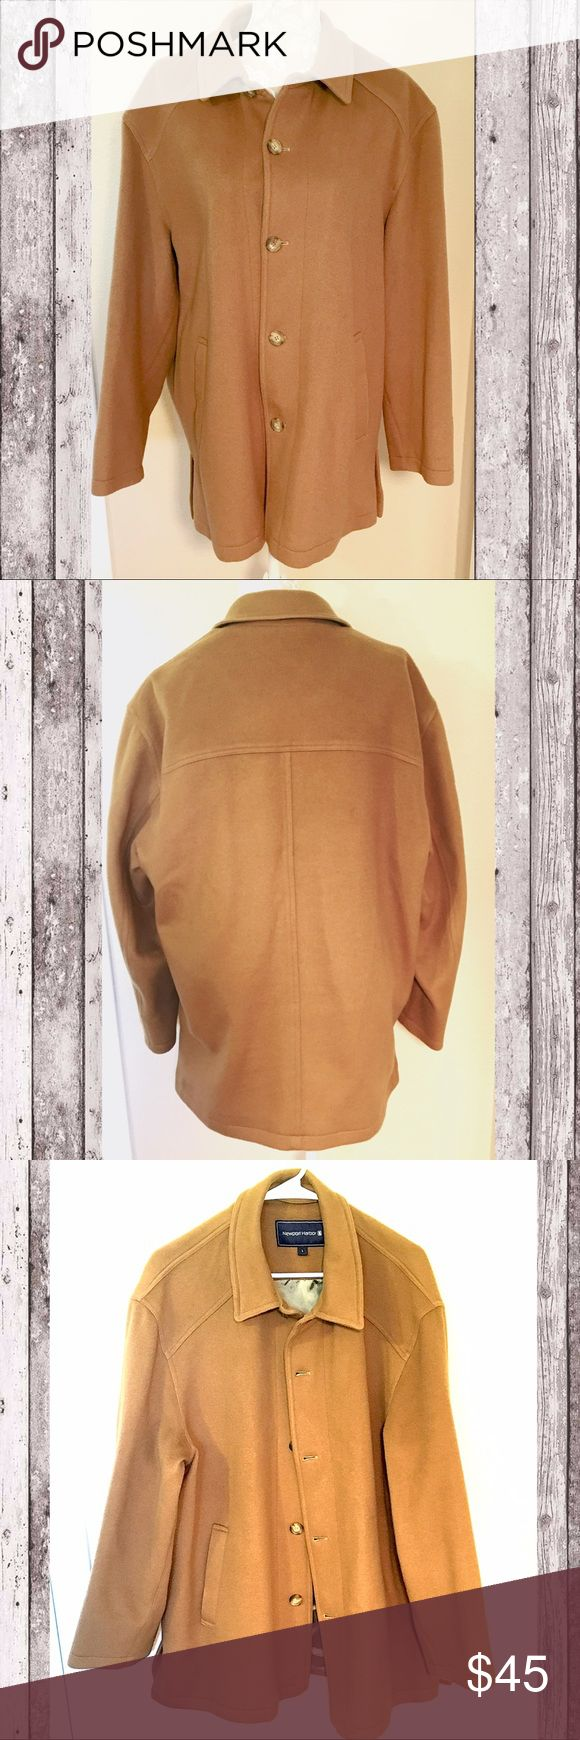 Men's Newport Harbor 100% Wool camel coat, EUC Men's Newport Harbor 100% wool coat in gorgeous camel color. Size Large. 100% poly lining, 3 inside pockets, 2 outside pockets. Front button closure, extra buttons attached near hem. EUC, like new, no damage, lining is perfect, smoke free home. #newportharbor #large #men #coat #jacket #wool #tan #camel #euc ❌no trades❌ Newport Harbor Jackets & Coats Pea Coats